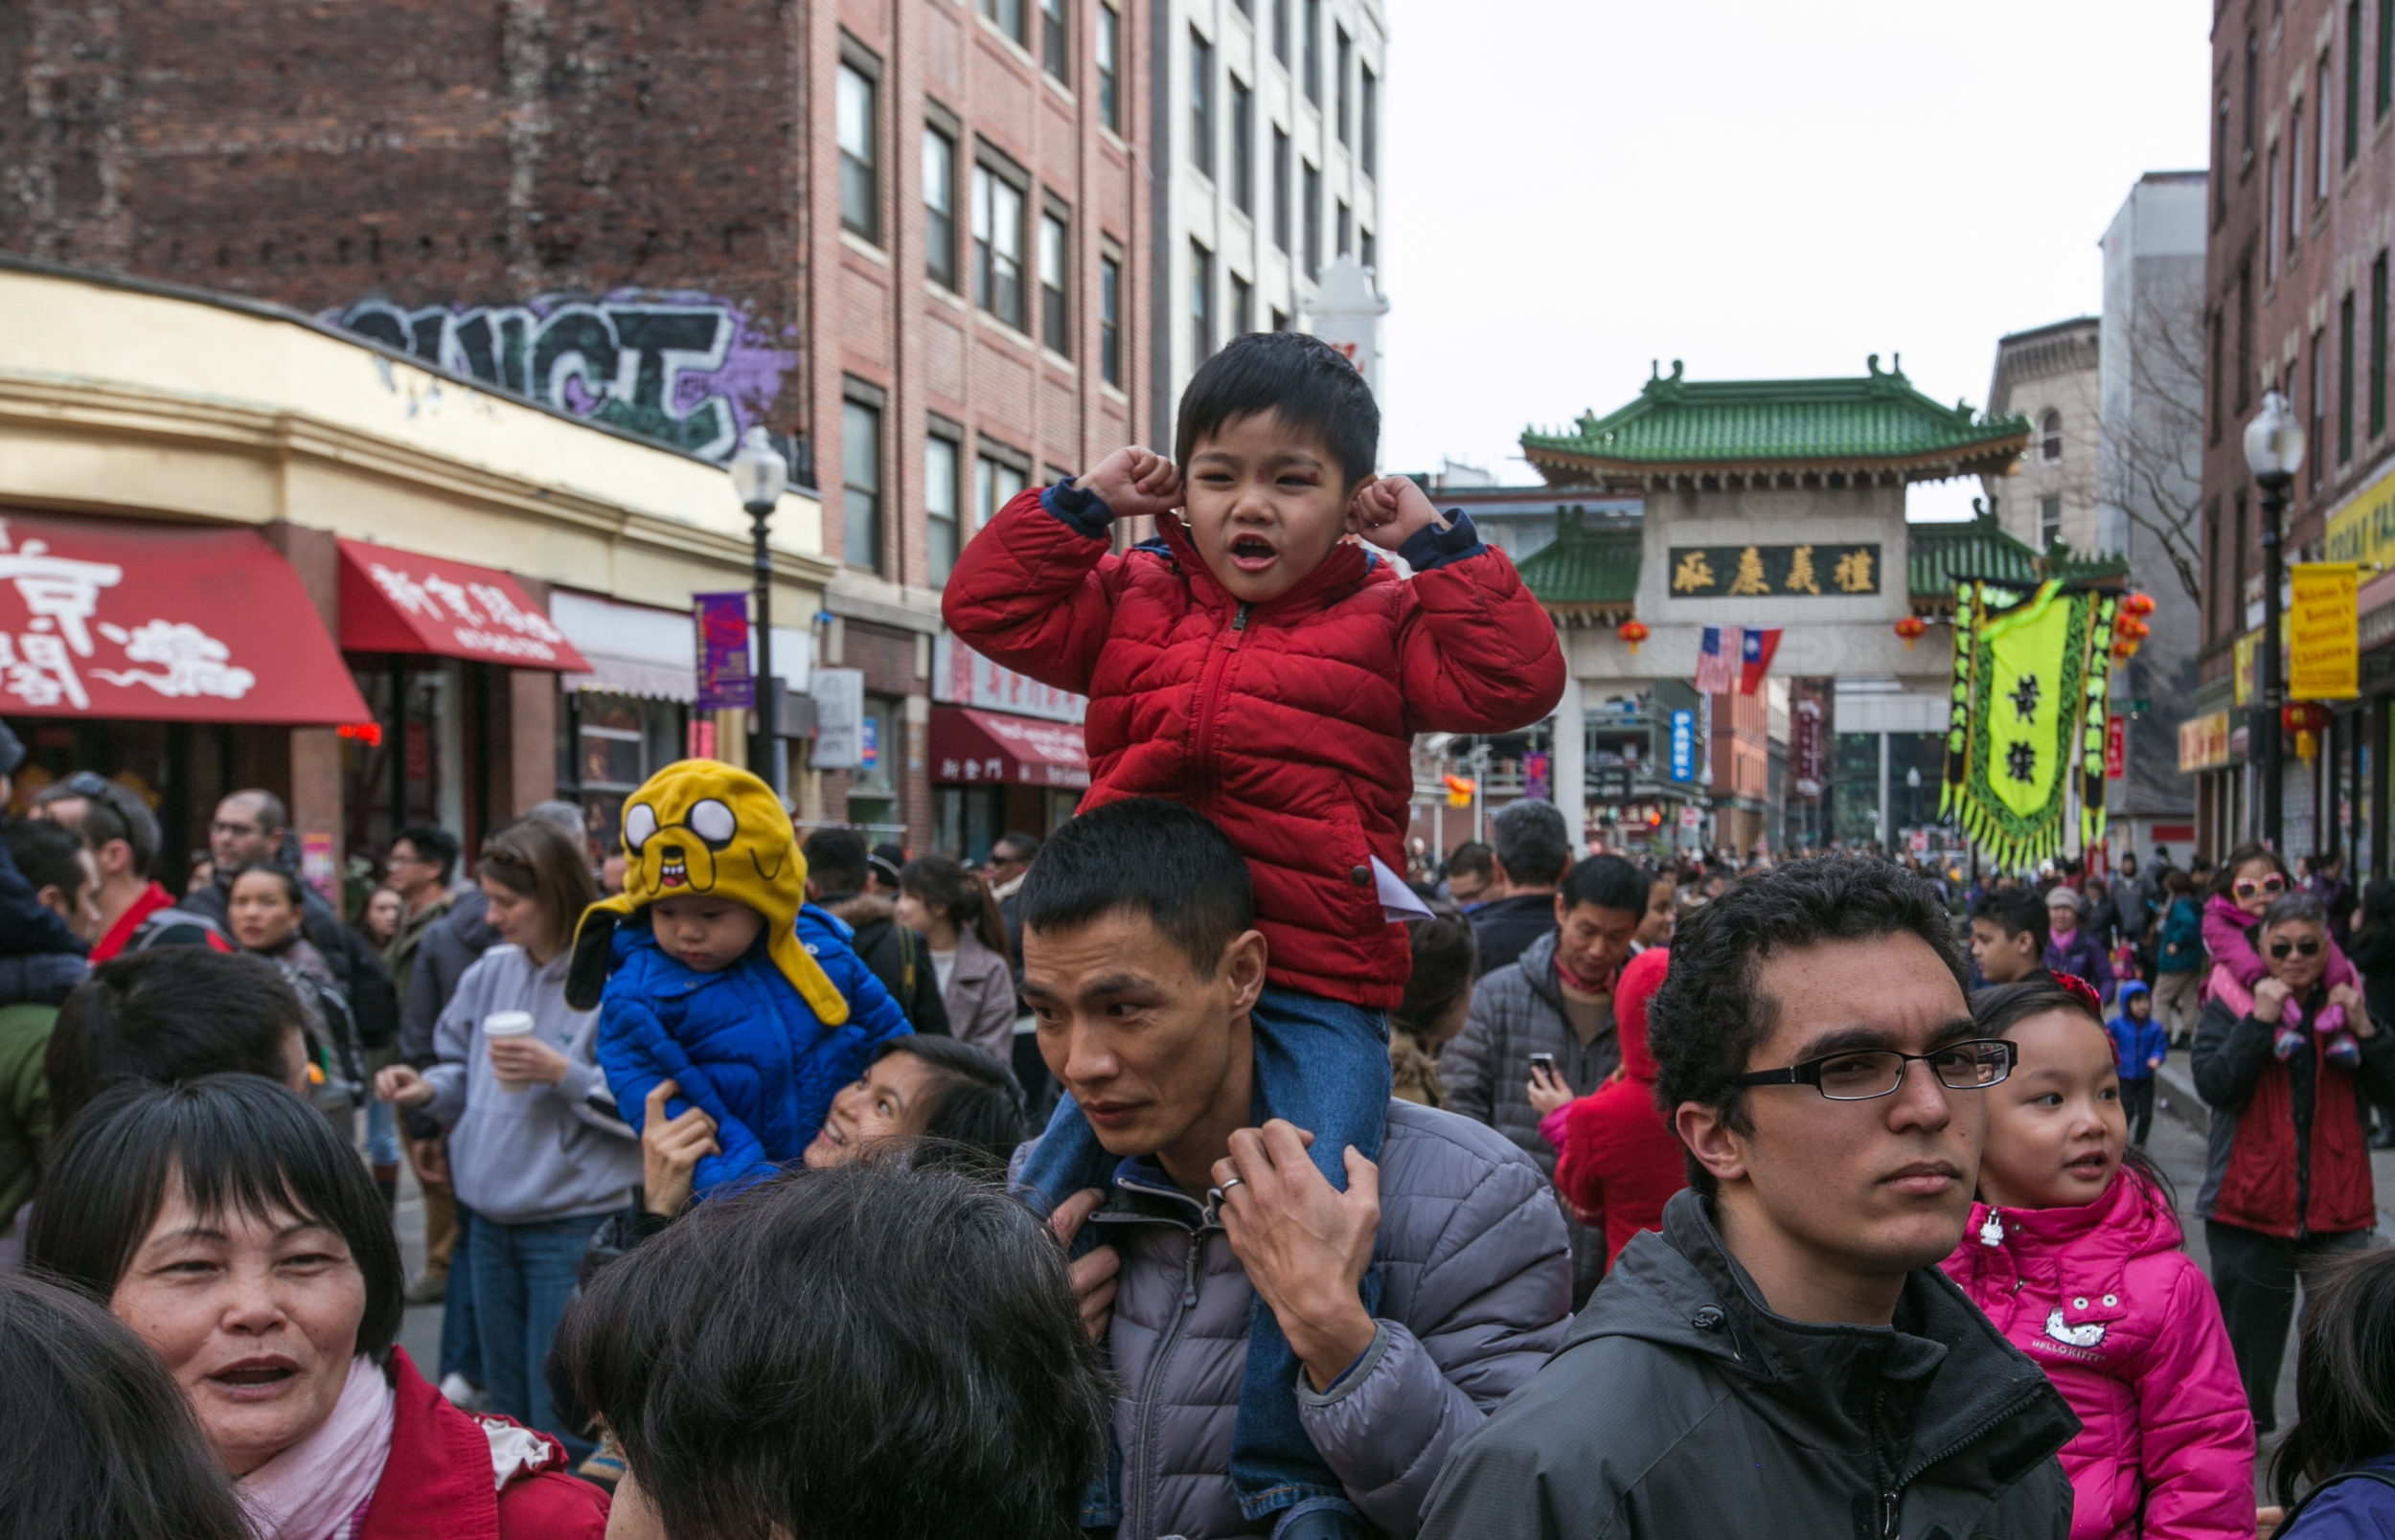 February 21, 2016: Sam Lee holds his ears as firecrackers explode during a Lion Dance performance on Beach Street in Boston's Chinatown.The celebration is organized by the Boston Chinese Freemasons in honor of the Chinese New Year.The use of firecrackers and fast-paced music throughout the festivities is believed to scare away evil spirits and bring good luck to the businesses in the year to come.  ©  Mike Schwarz